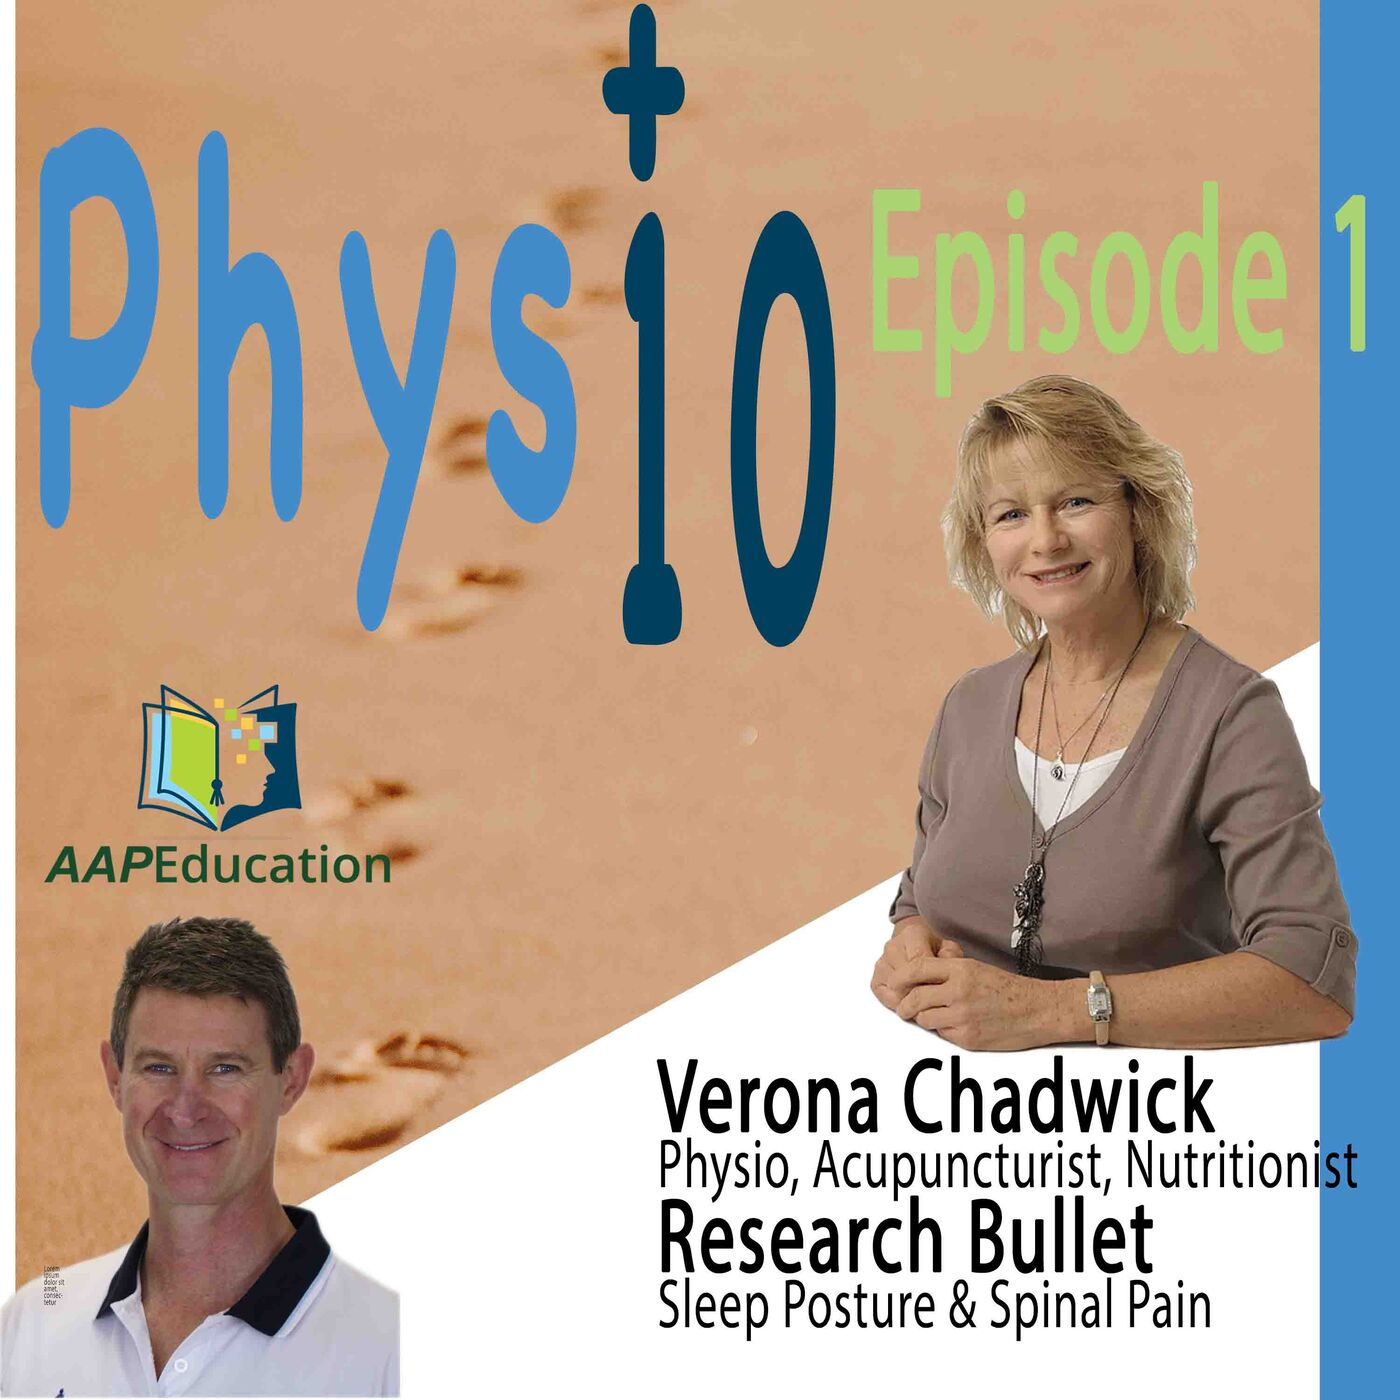 Verona Chadwick: Physio, Acupuncturist & Nutritionist | Research Bullet: Sleep Posture & Spinal Pain